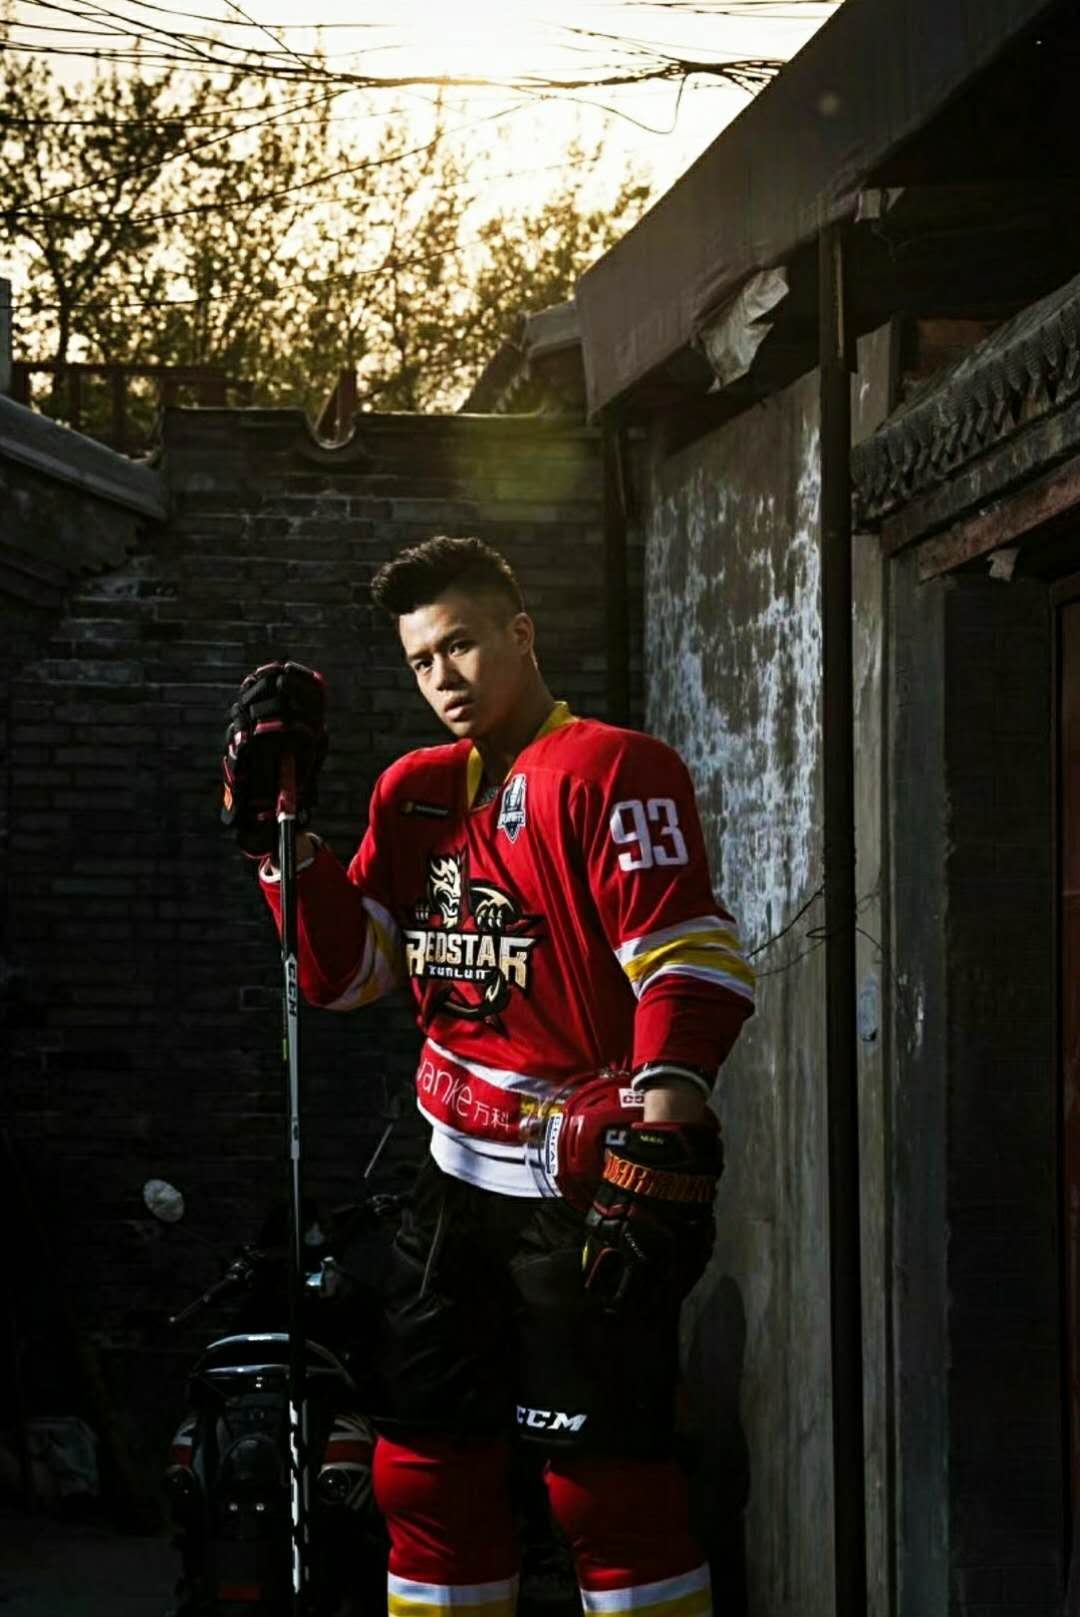 Interview: Zach Yuen, the face of Chinese ice hockey